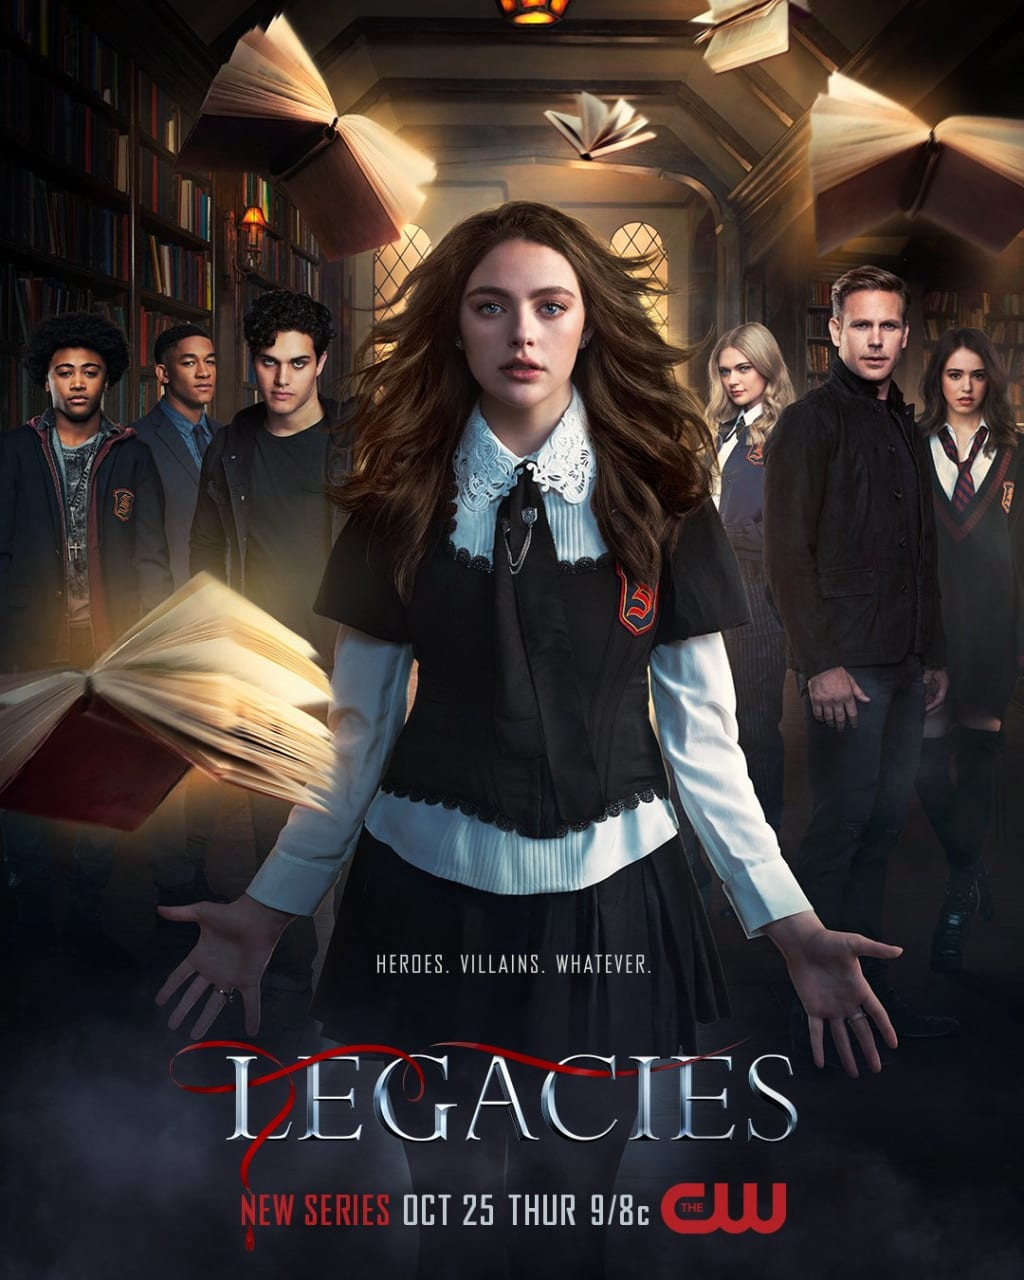 My Wish List for 'Legacies' Season 2